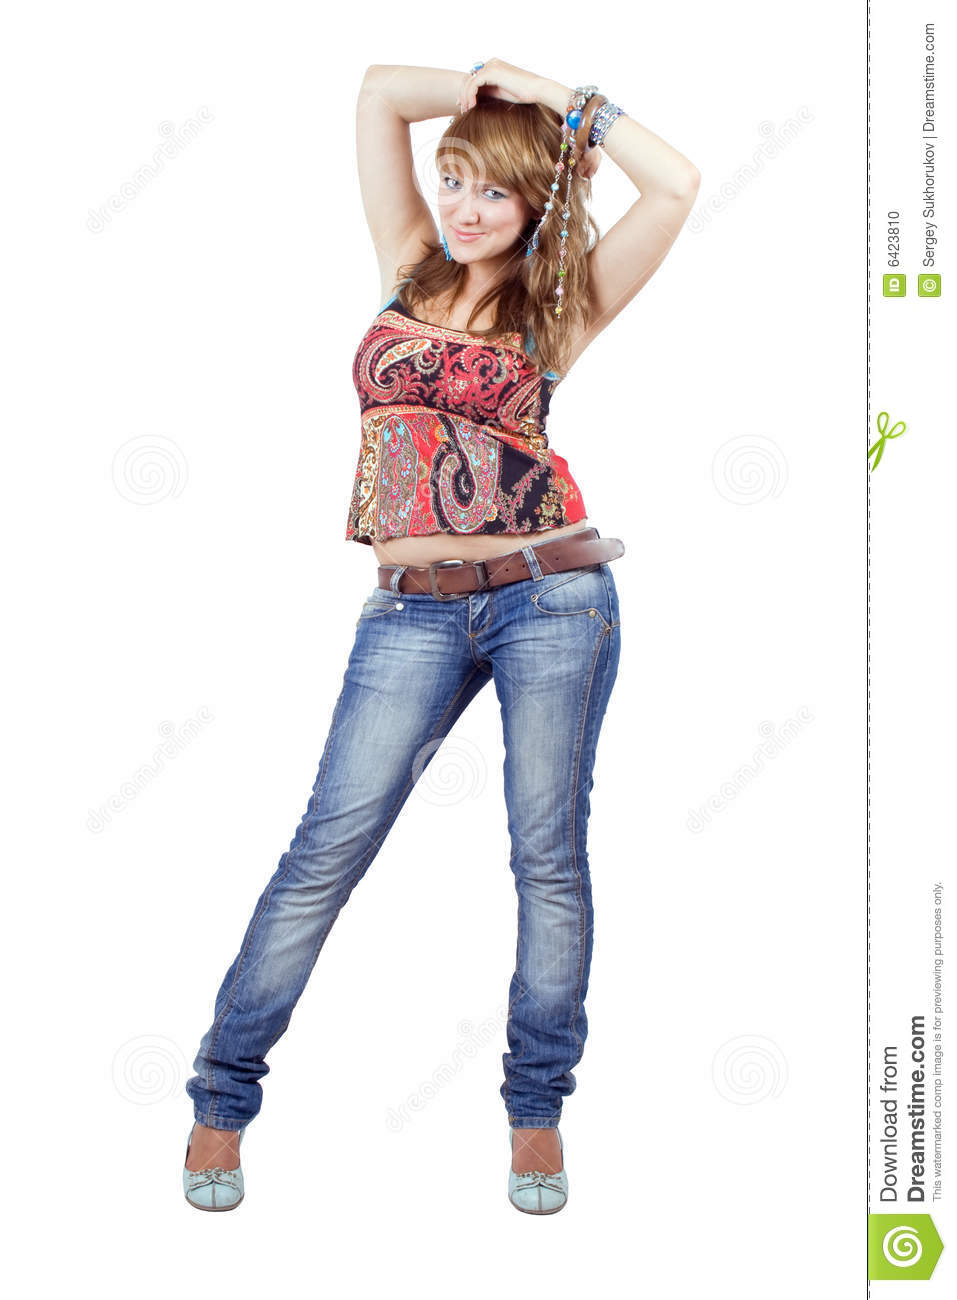 The beautiful young woman in blue jeans